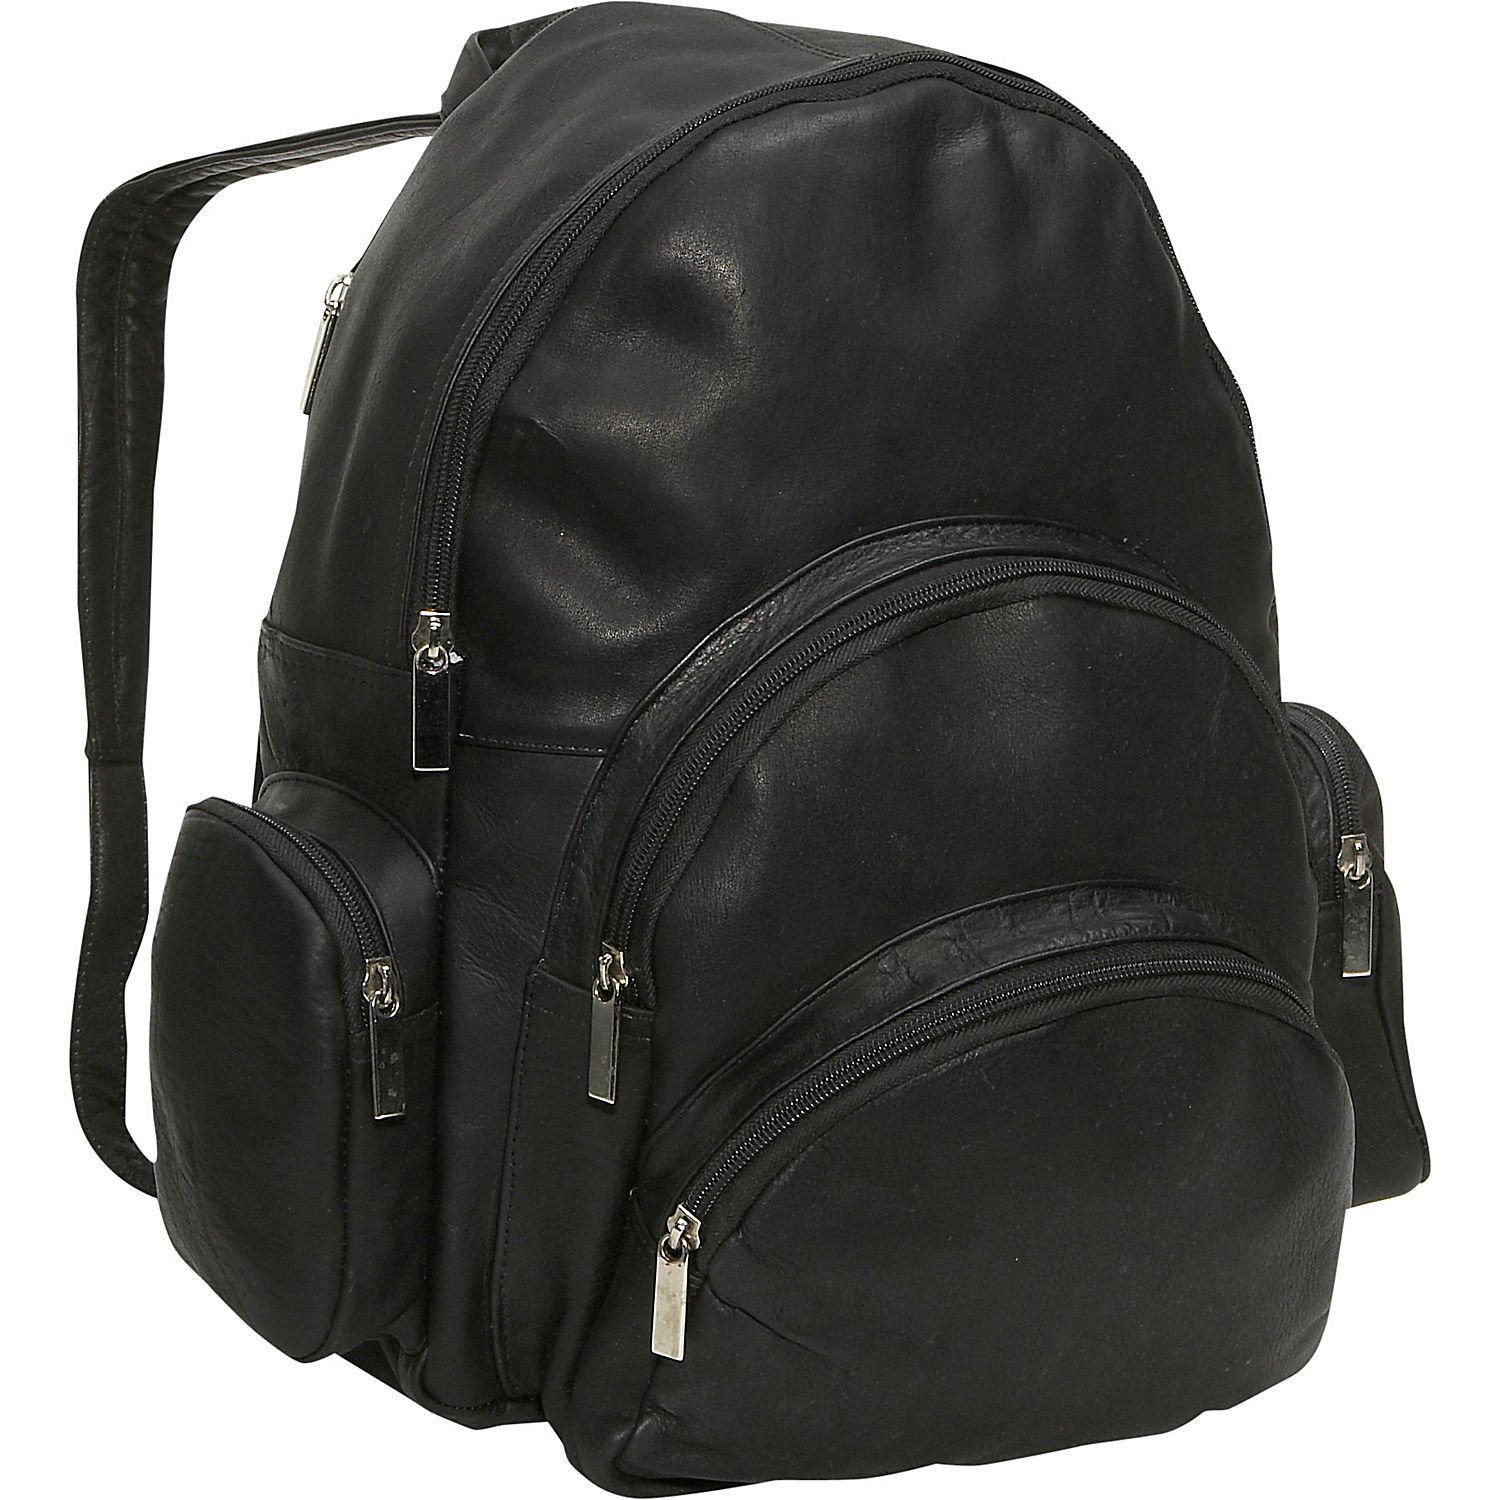 David King Leather Expandable Backpack in Black by David King & Co